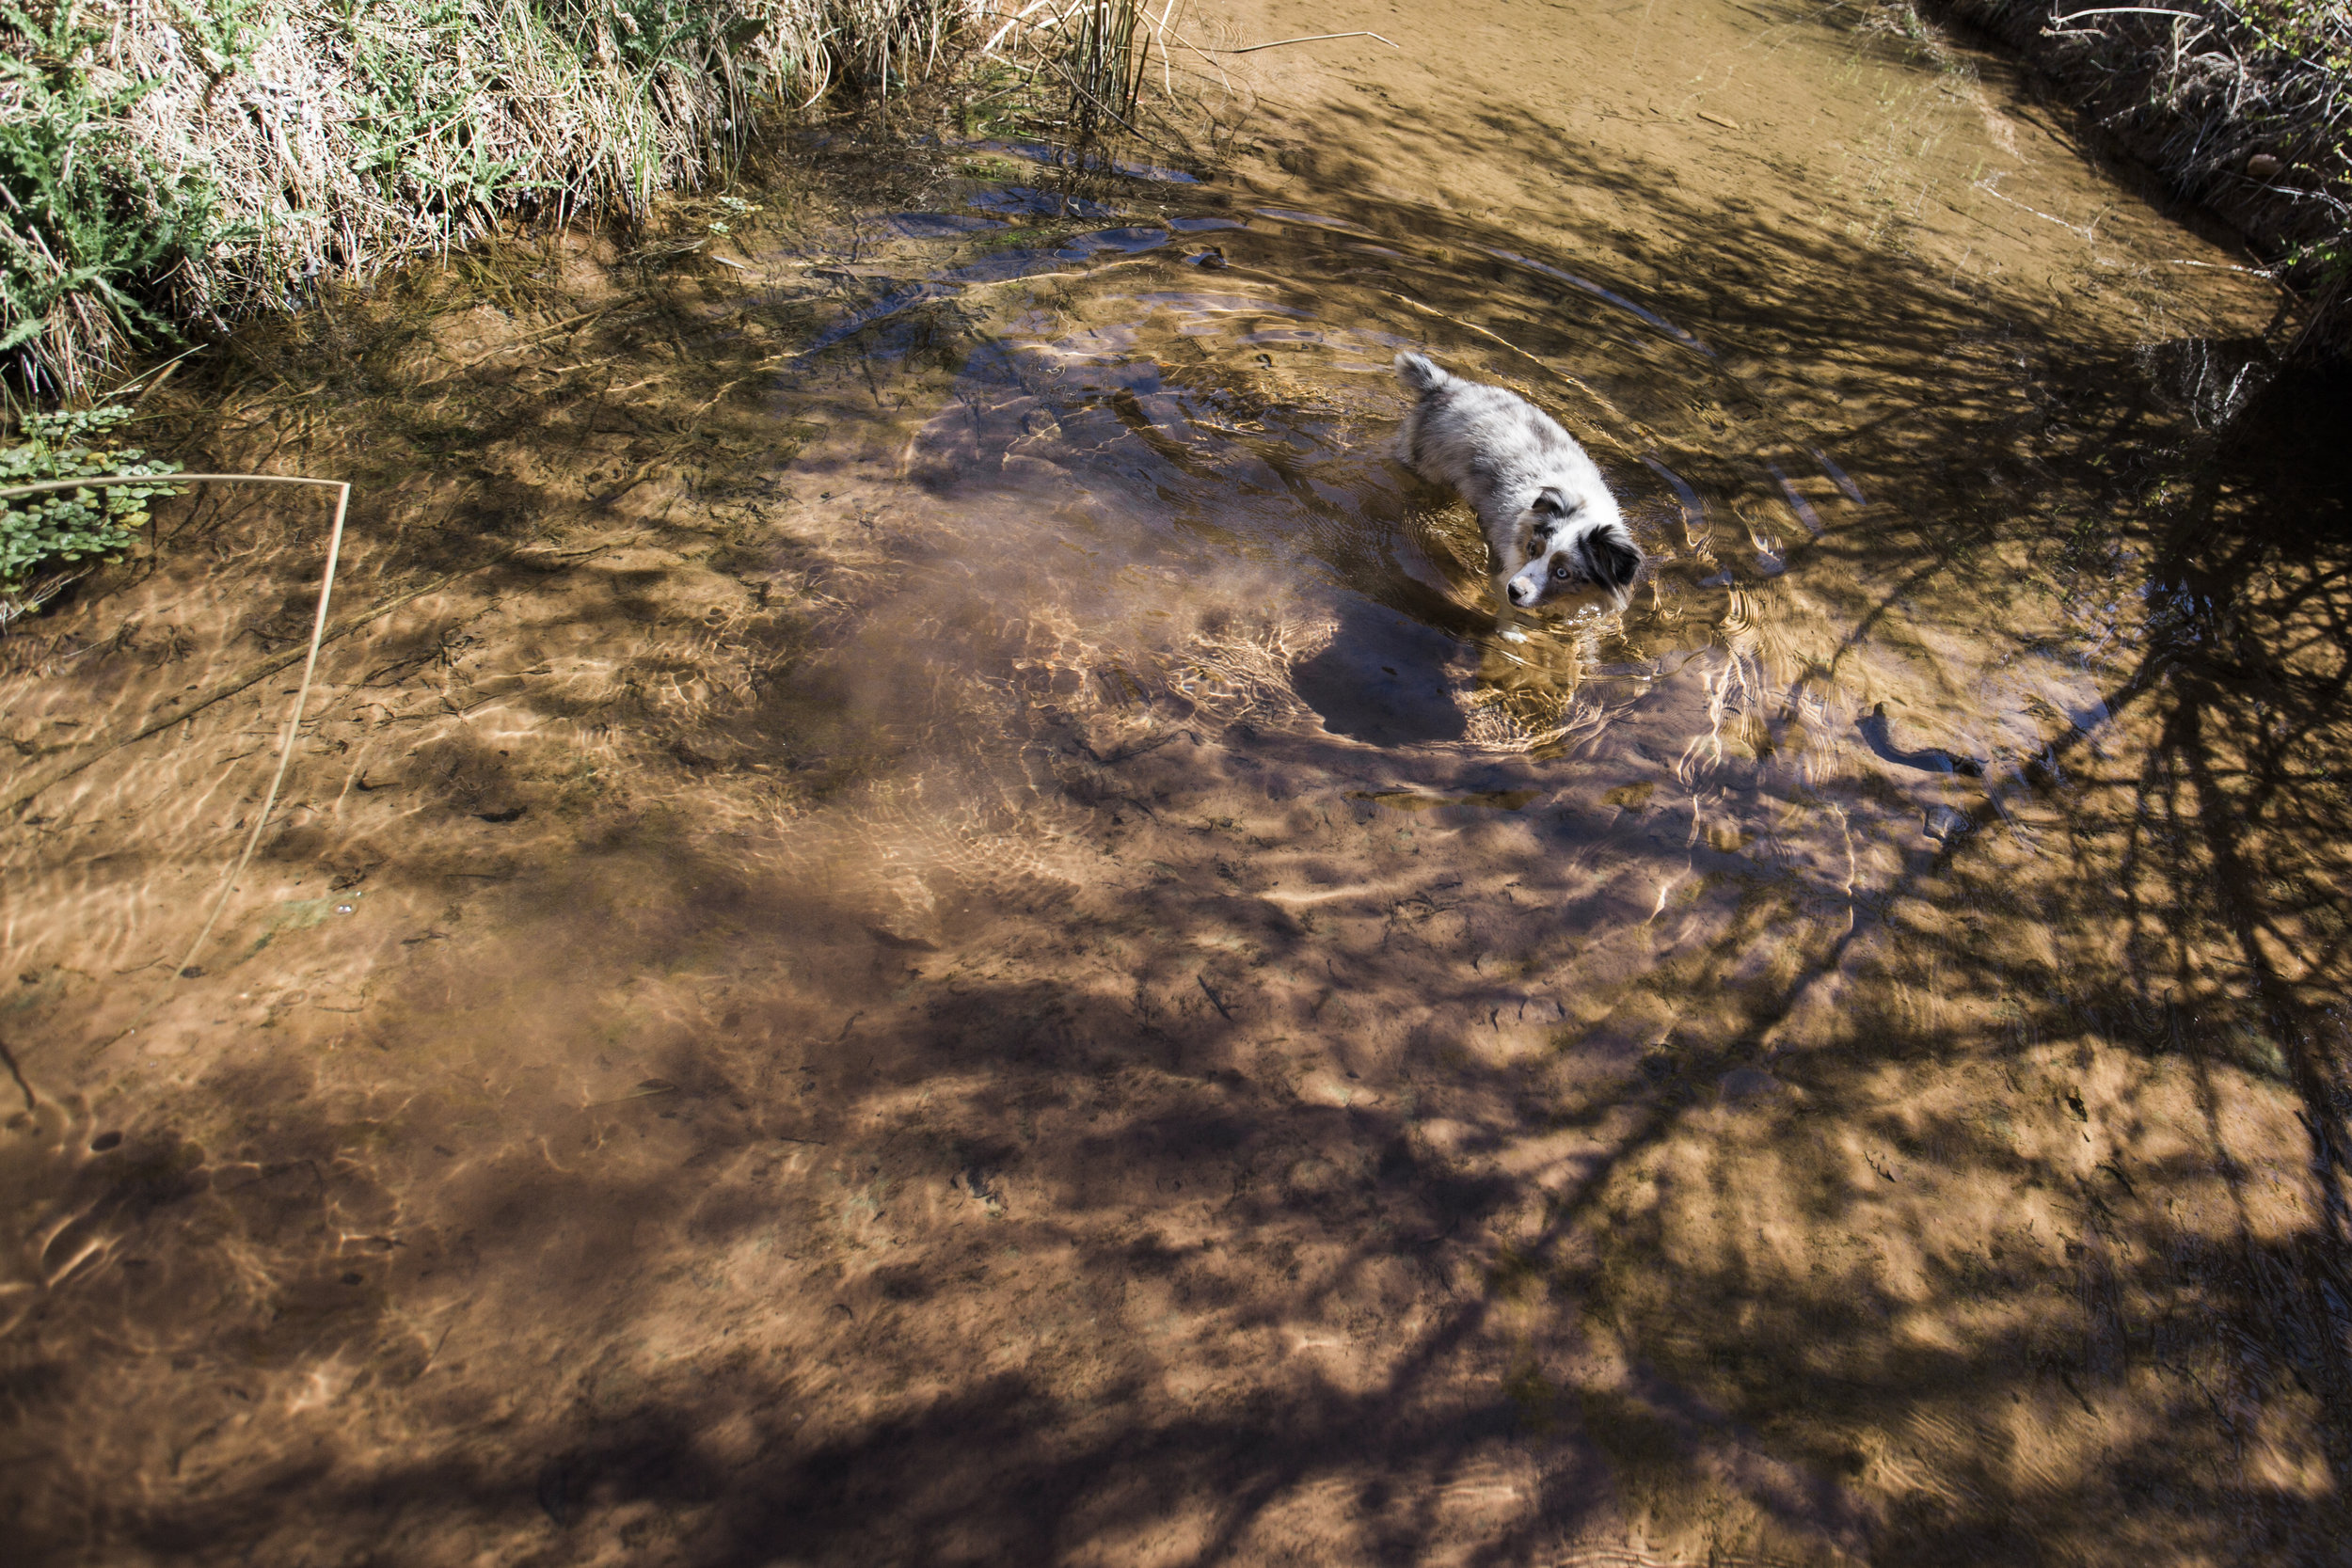 Luna discovered she loved swimming here :) We're pretty sentimental about this memory.